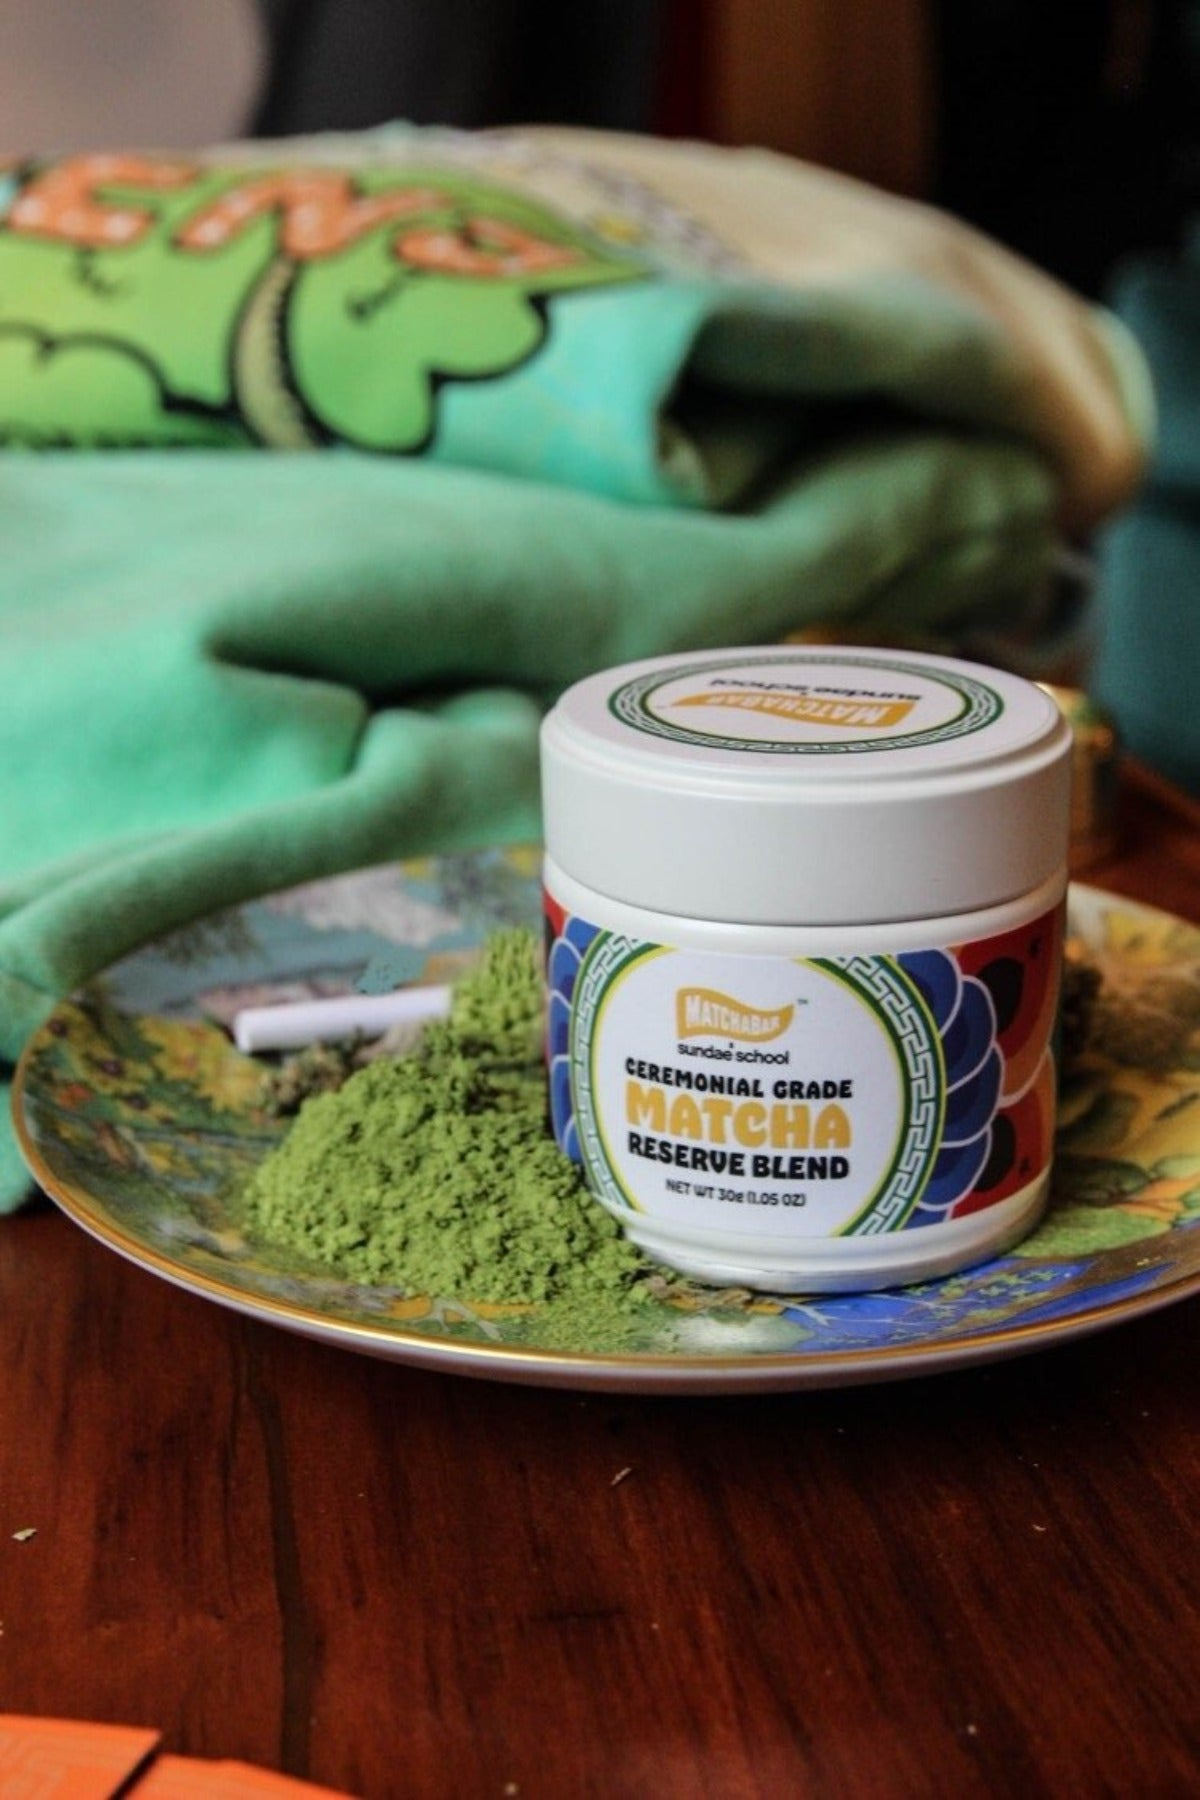 Reserve Blend Matcha Powder [Collab x MatchaBar]